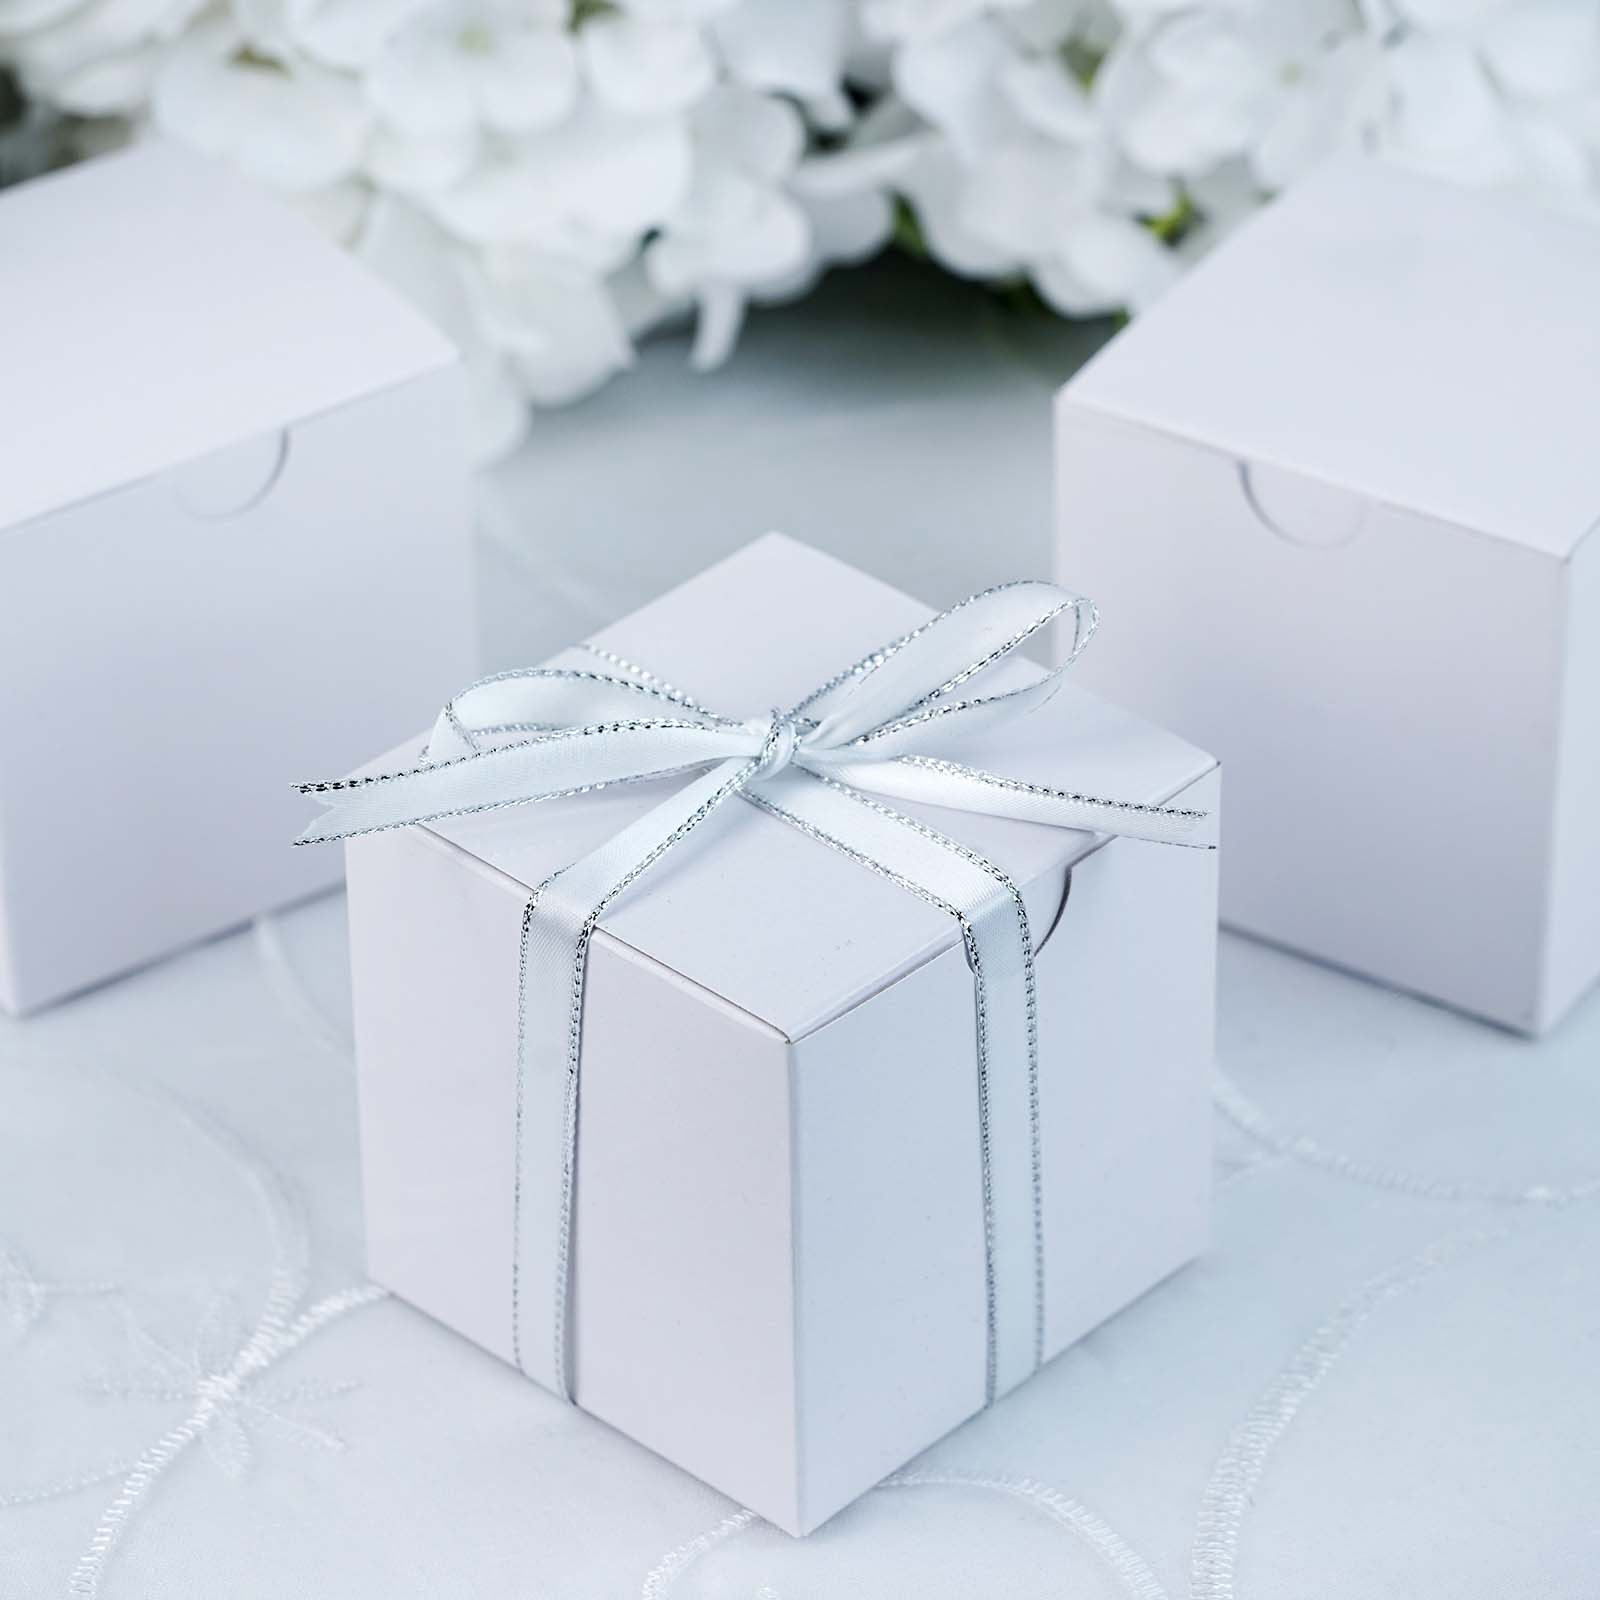 200 Pcs 3x3x3 Inch Paper Gift Boxes Wedding Favors Easy Packaging